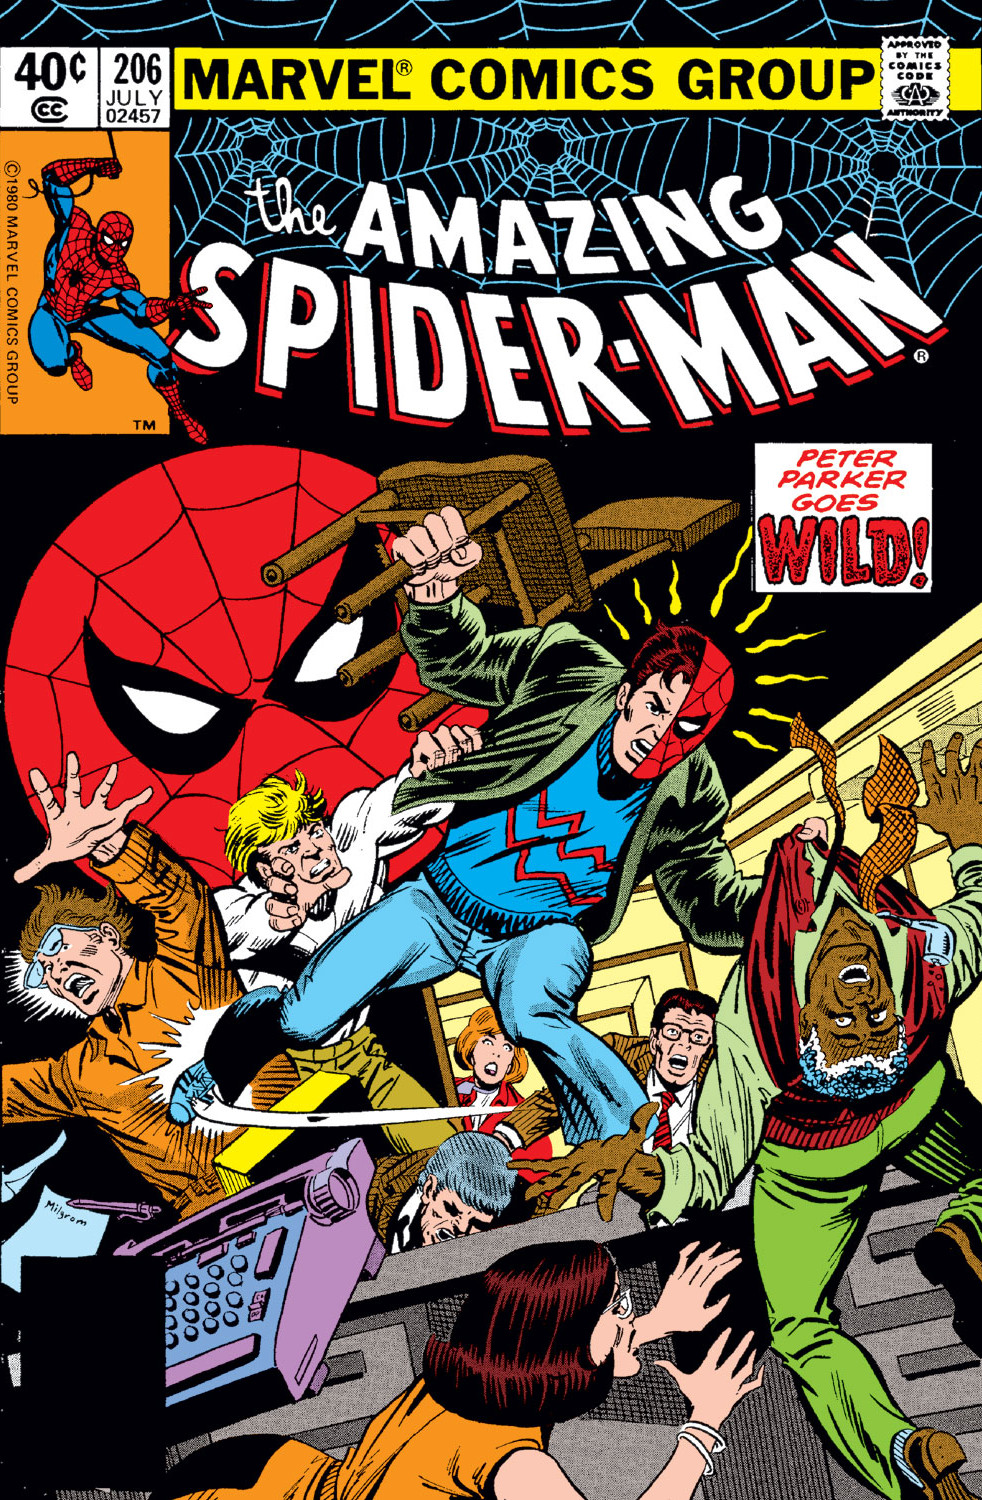 Amazing Spider-Man Vol 1 206.jpg